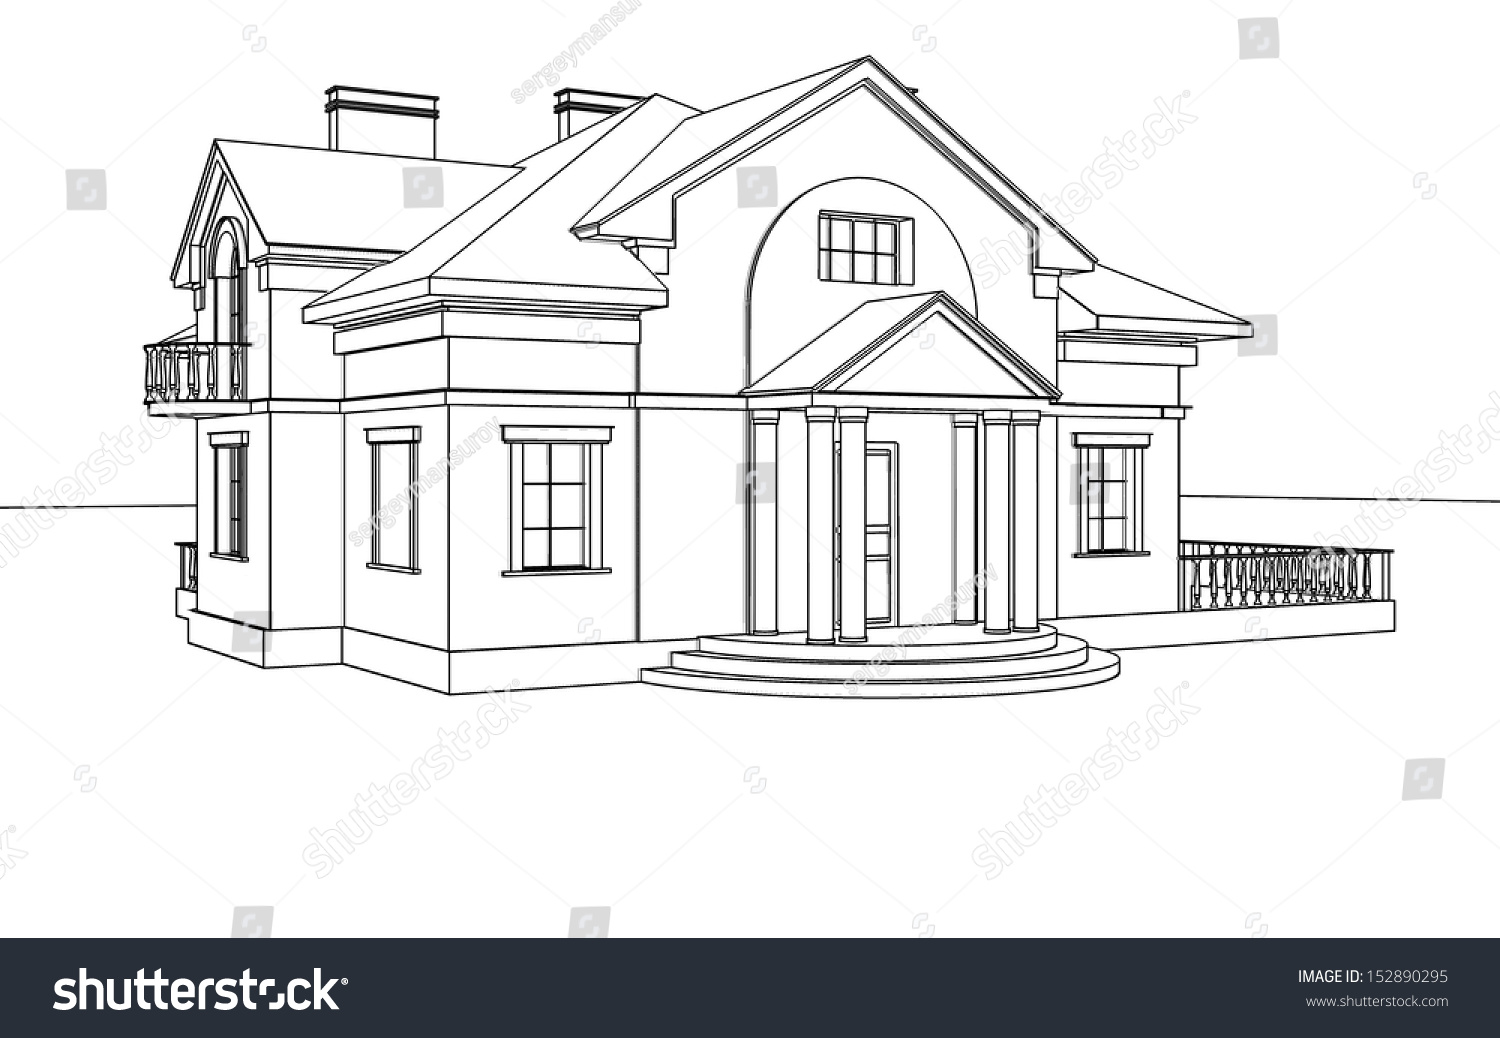 Drawing sketch house stock illustration 152890295 for Draw your house